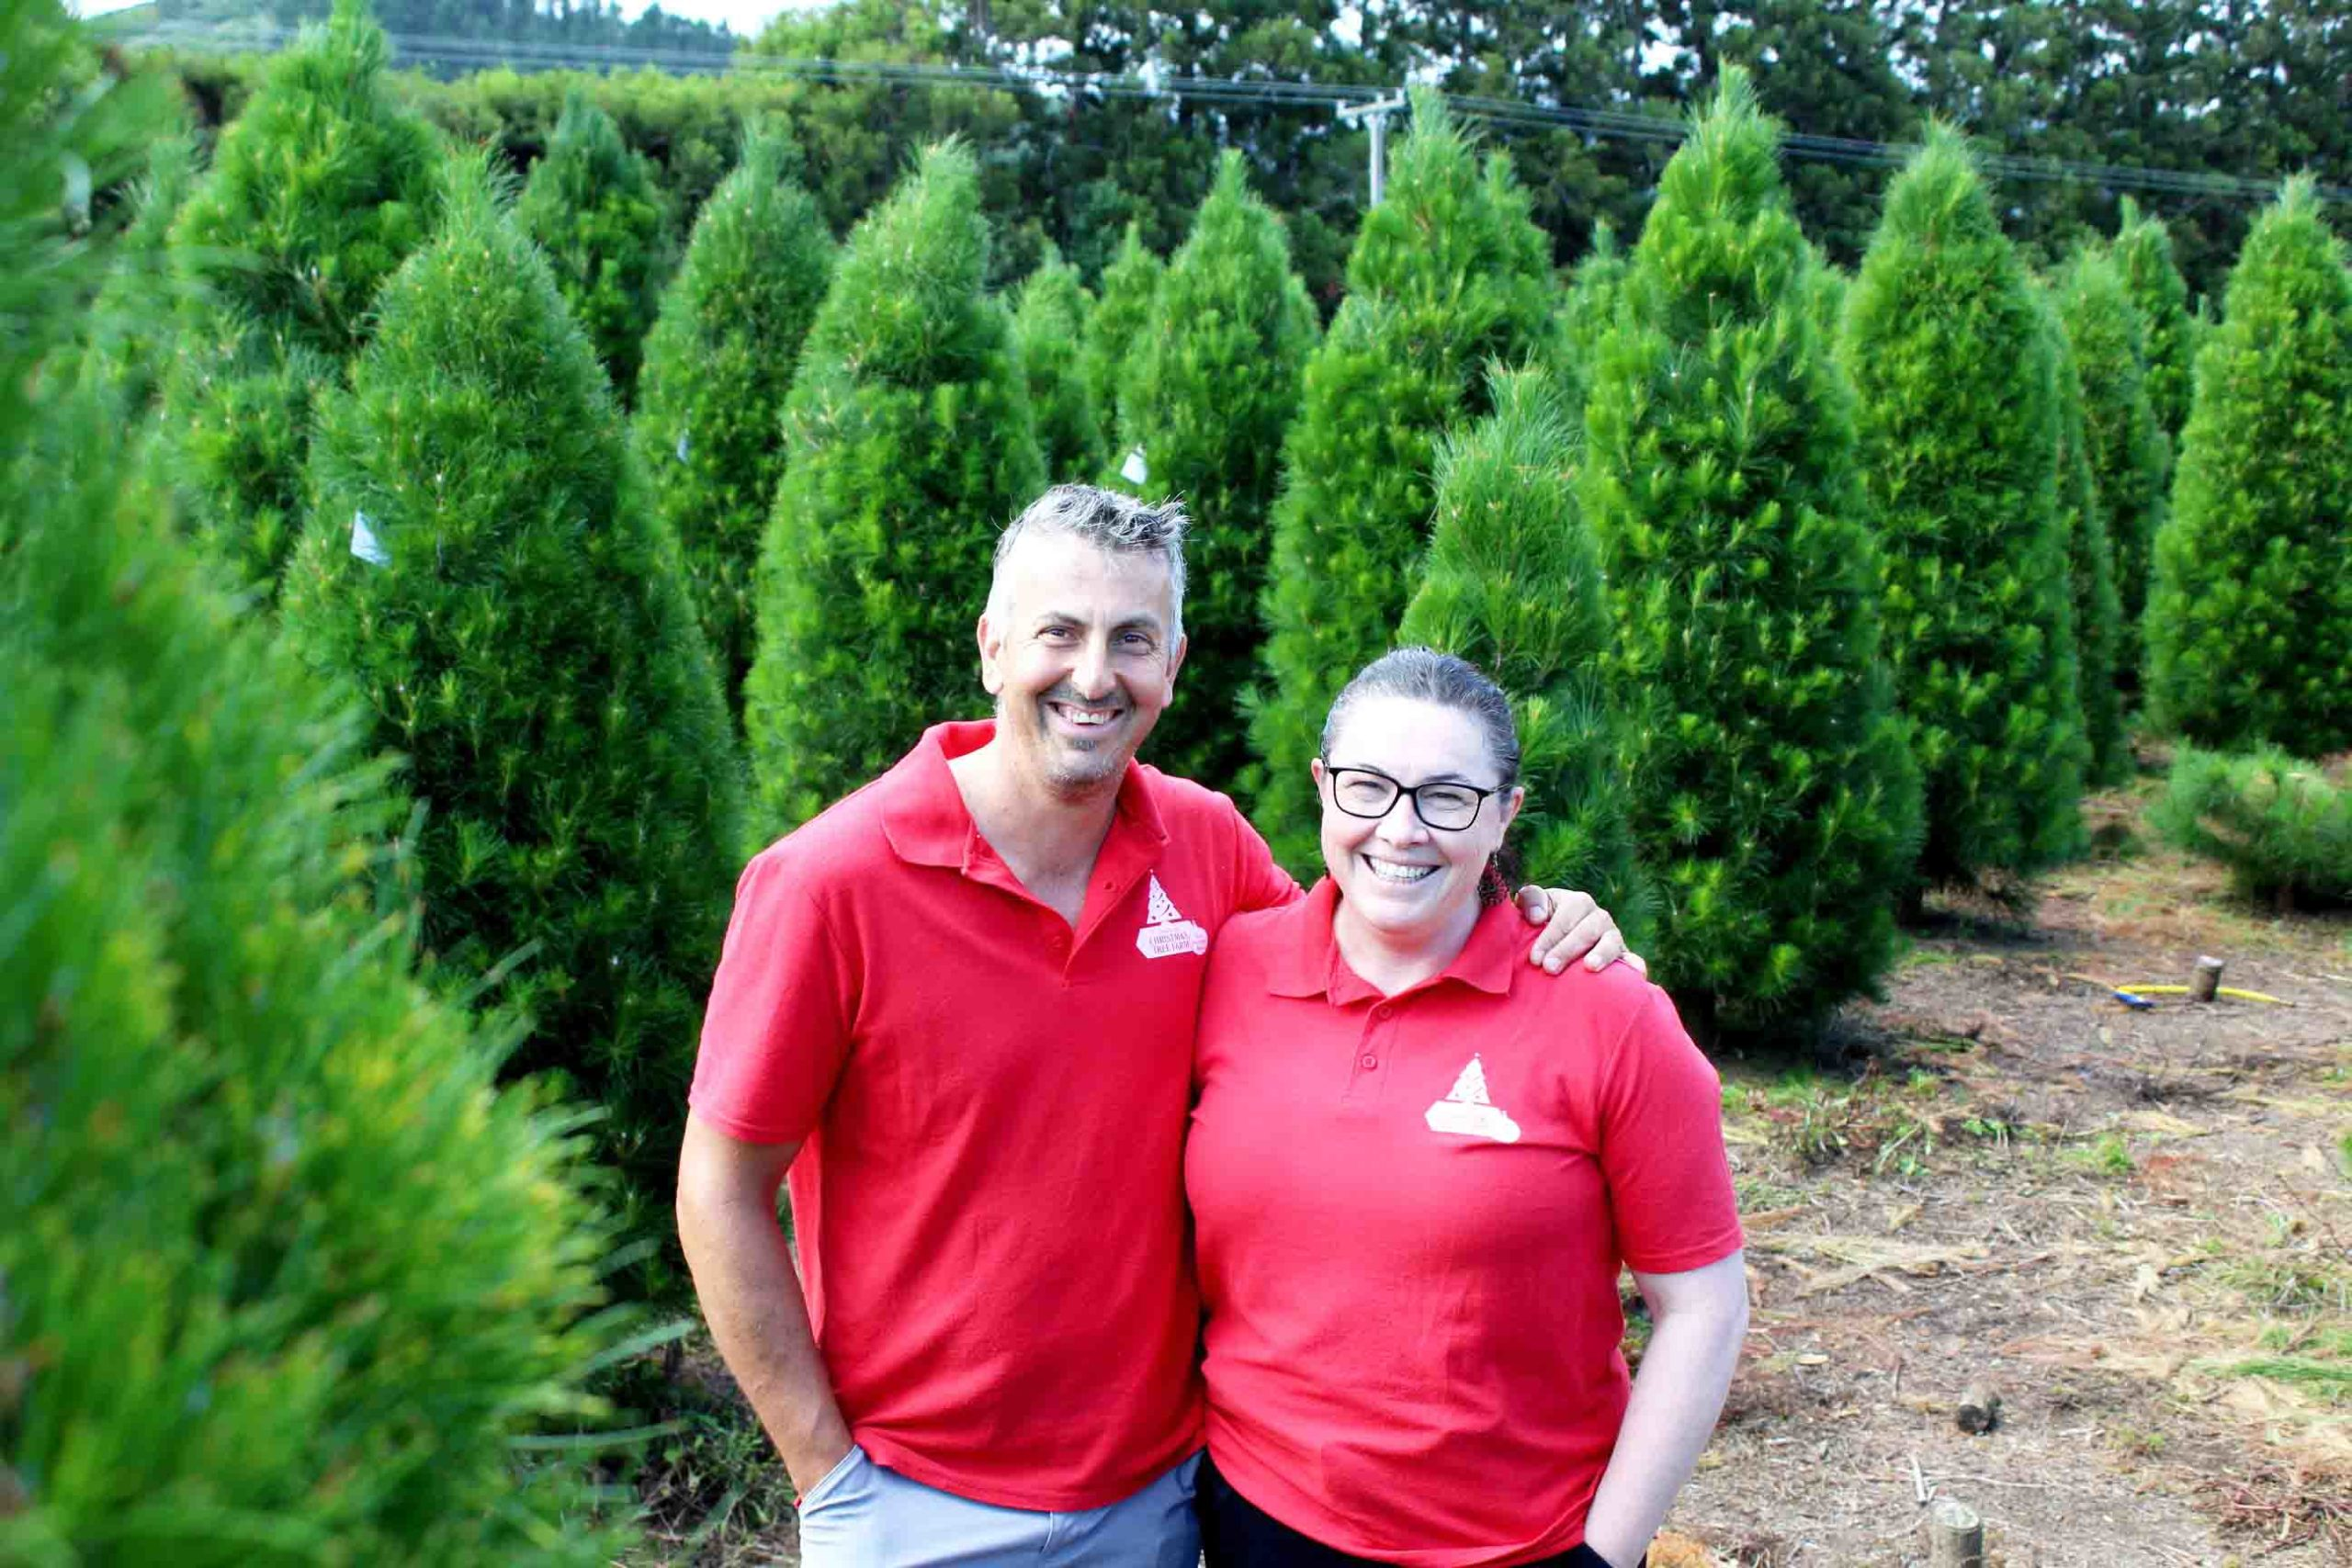 You are currently viewing Sights and smells of a Kiwi Christmas at Courtneys' Christmas Tree Farm